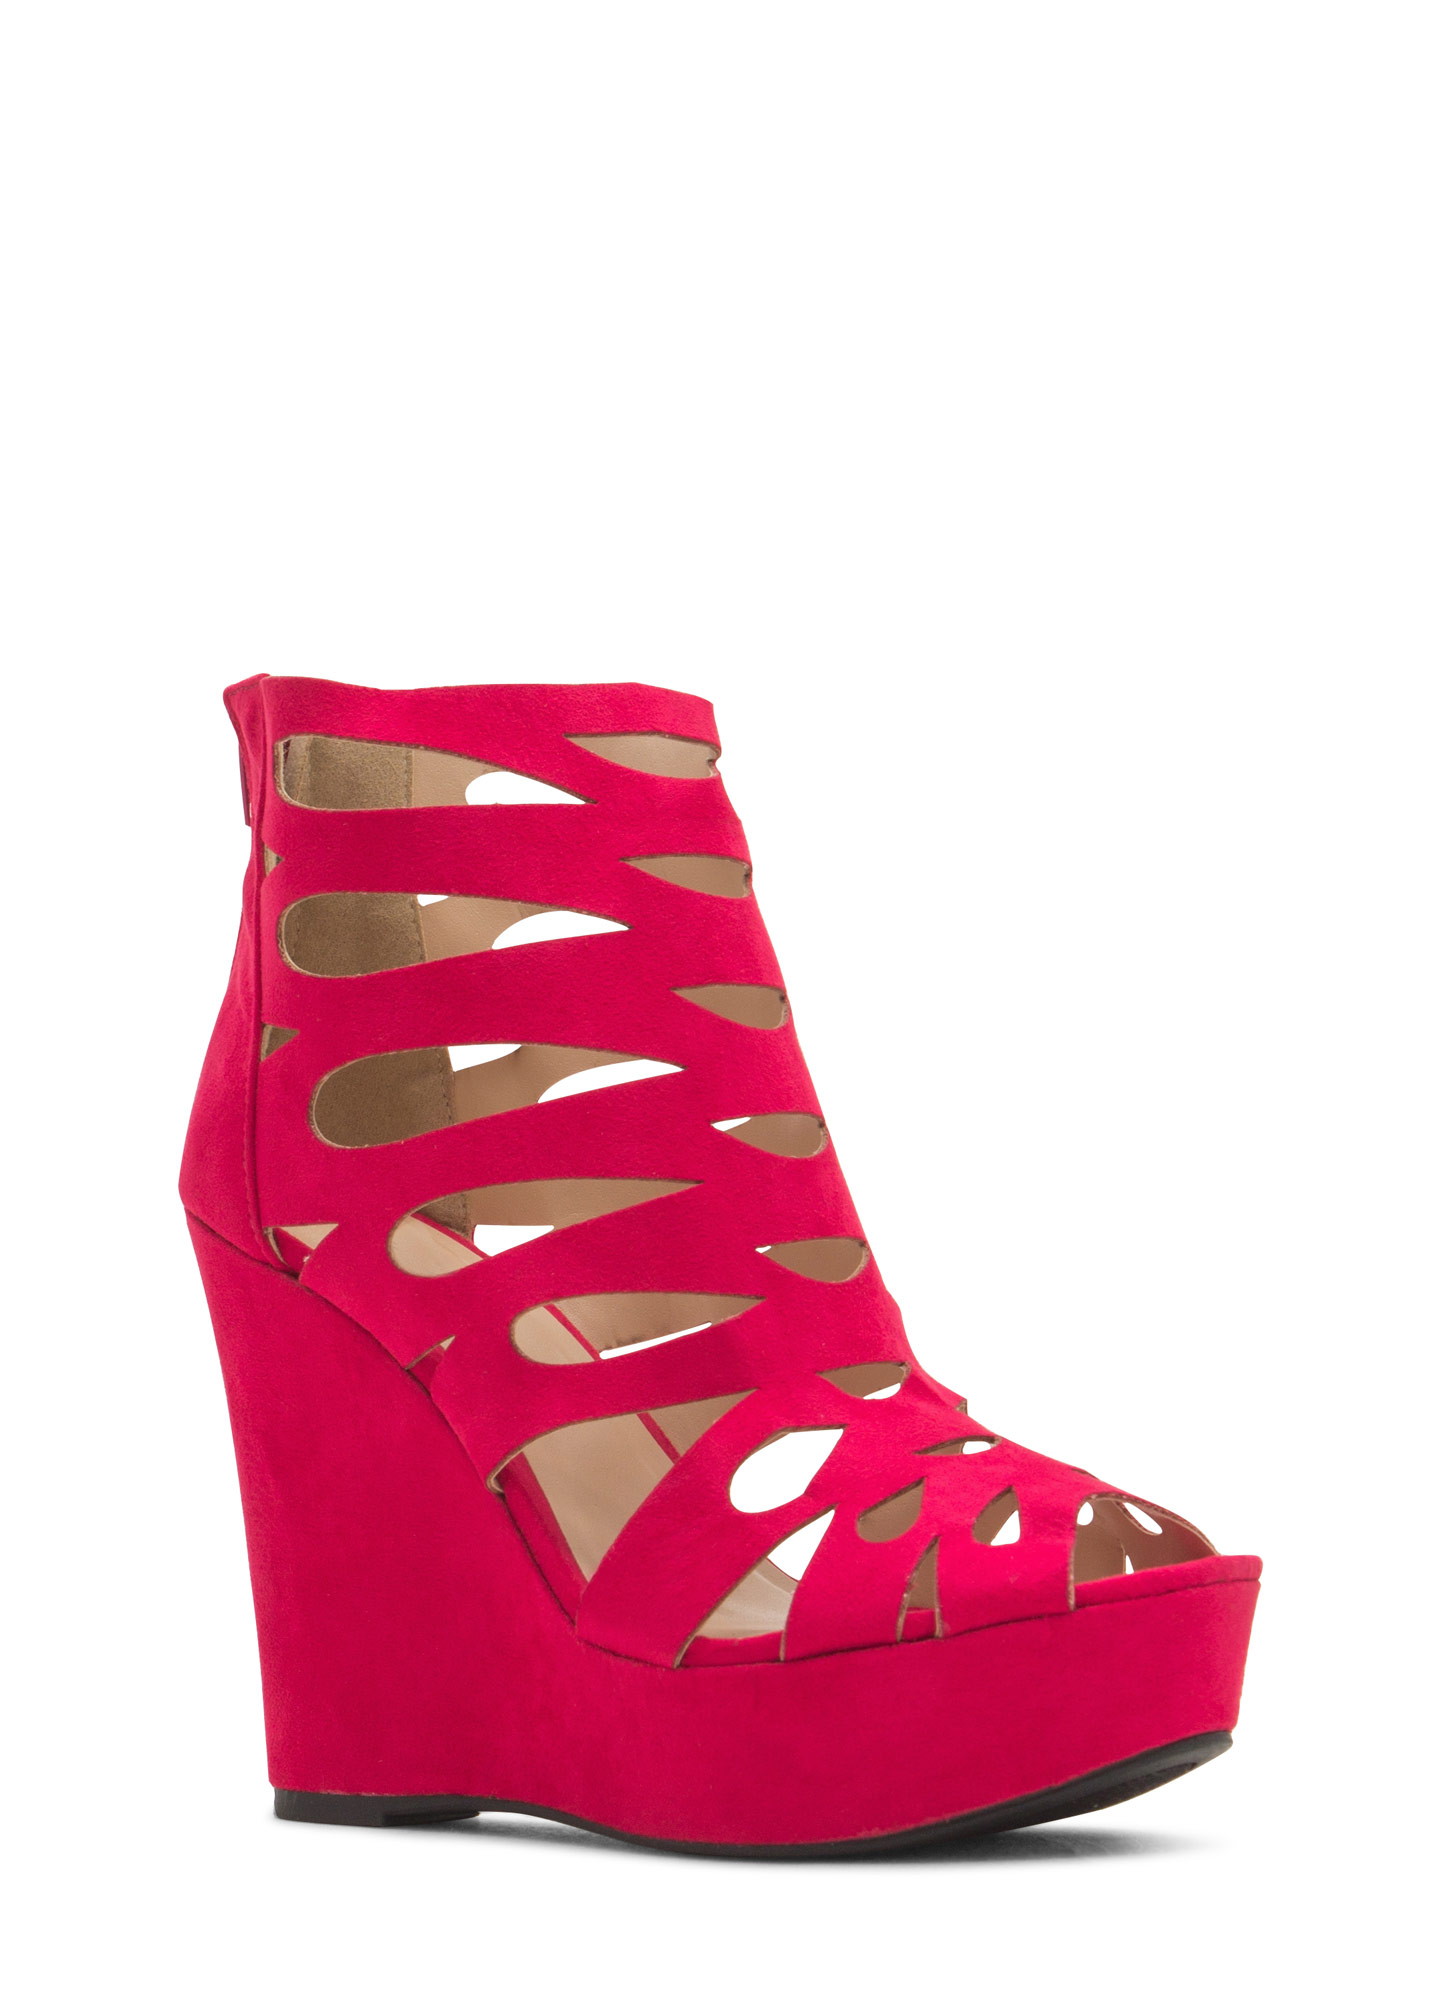 Teardrop Cut-Out Platform Wedges SANGRIA